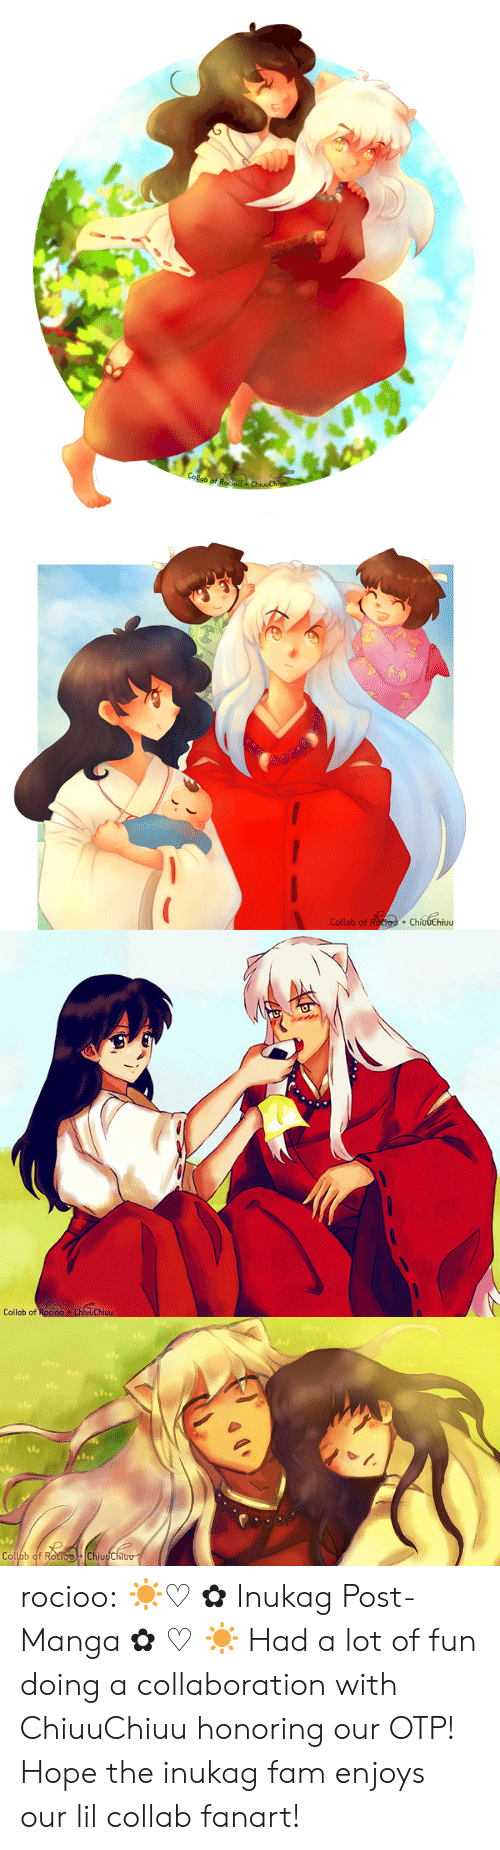 roo: Collab of Roo  ChivuChi   Collab of Roctoo + ChíudChiuu  +   Collab of Rocioo ChluuChiuu   Op  Collab of RocioChiuuChiou rocioo:  ☀♡✿Inukag Post-Manga✿♡☀ Had a lot of fun doing a collaboration with ChiuuChiuuhonoring our OTP! Hope the inukag fam enjoys our lil collab fanart!